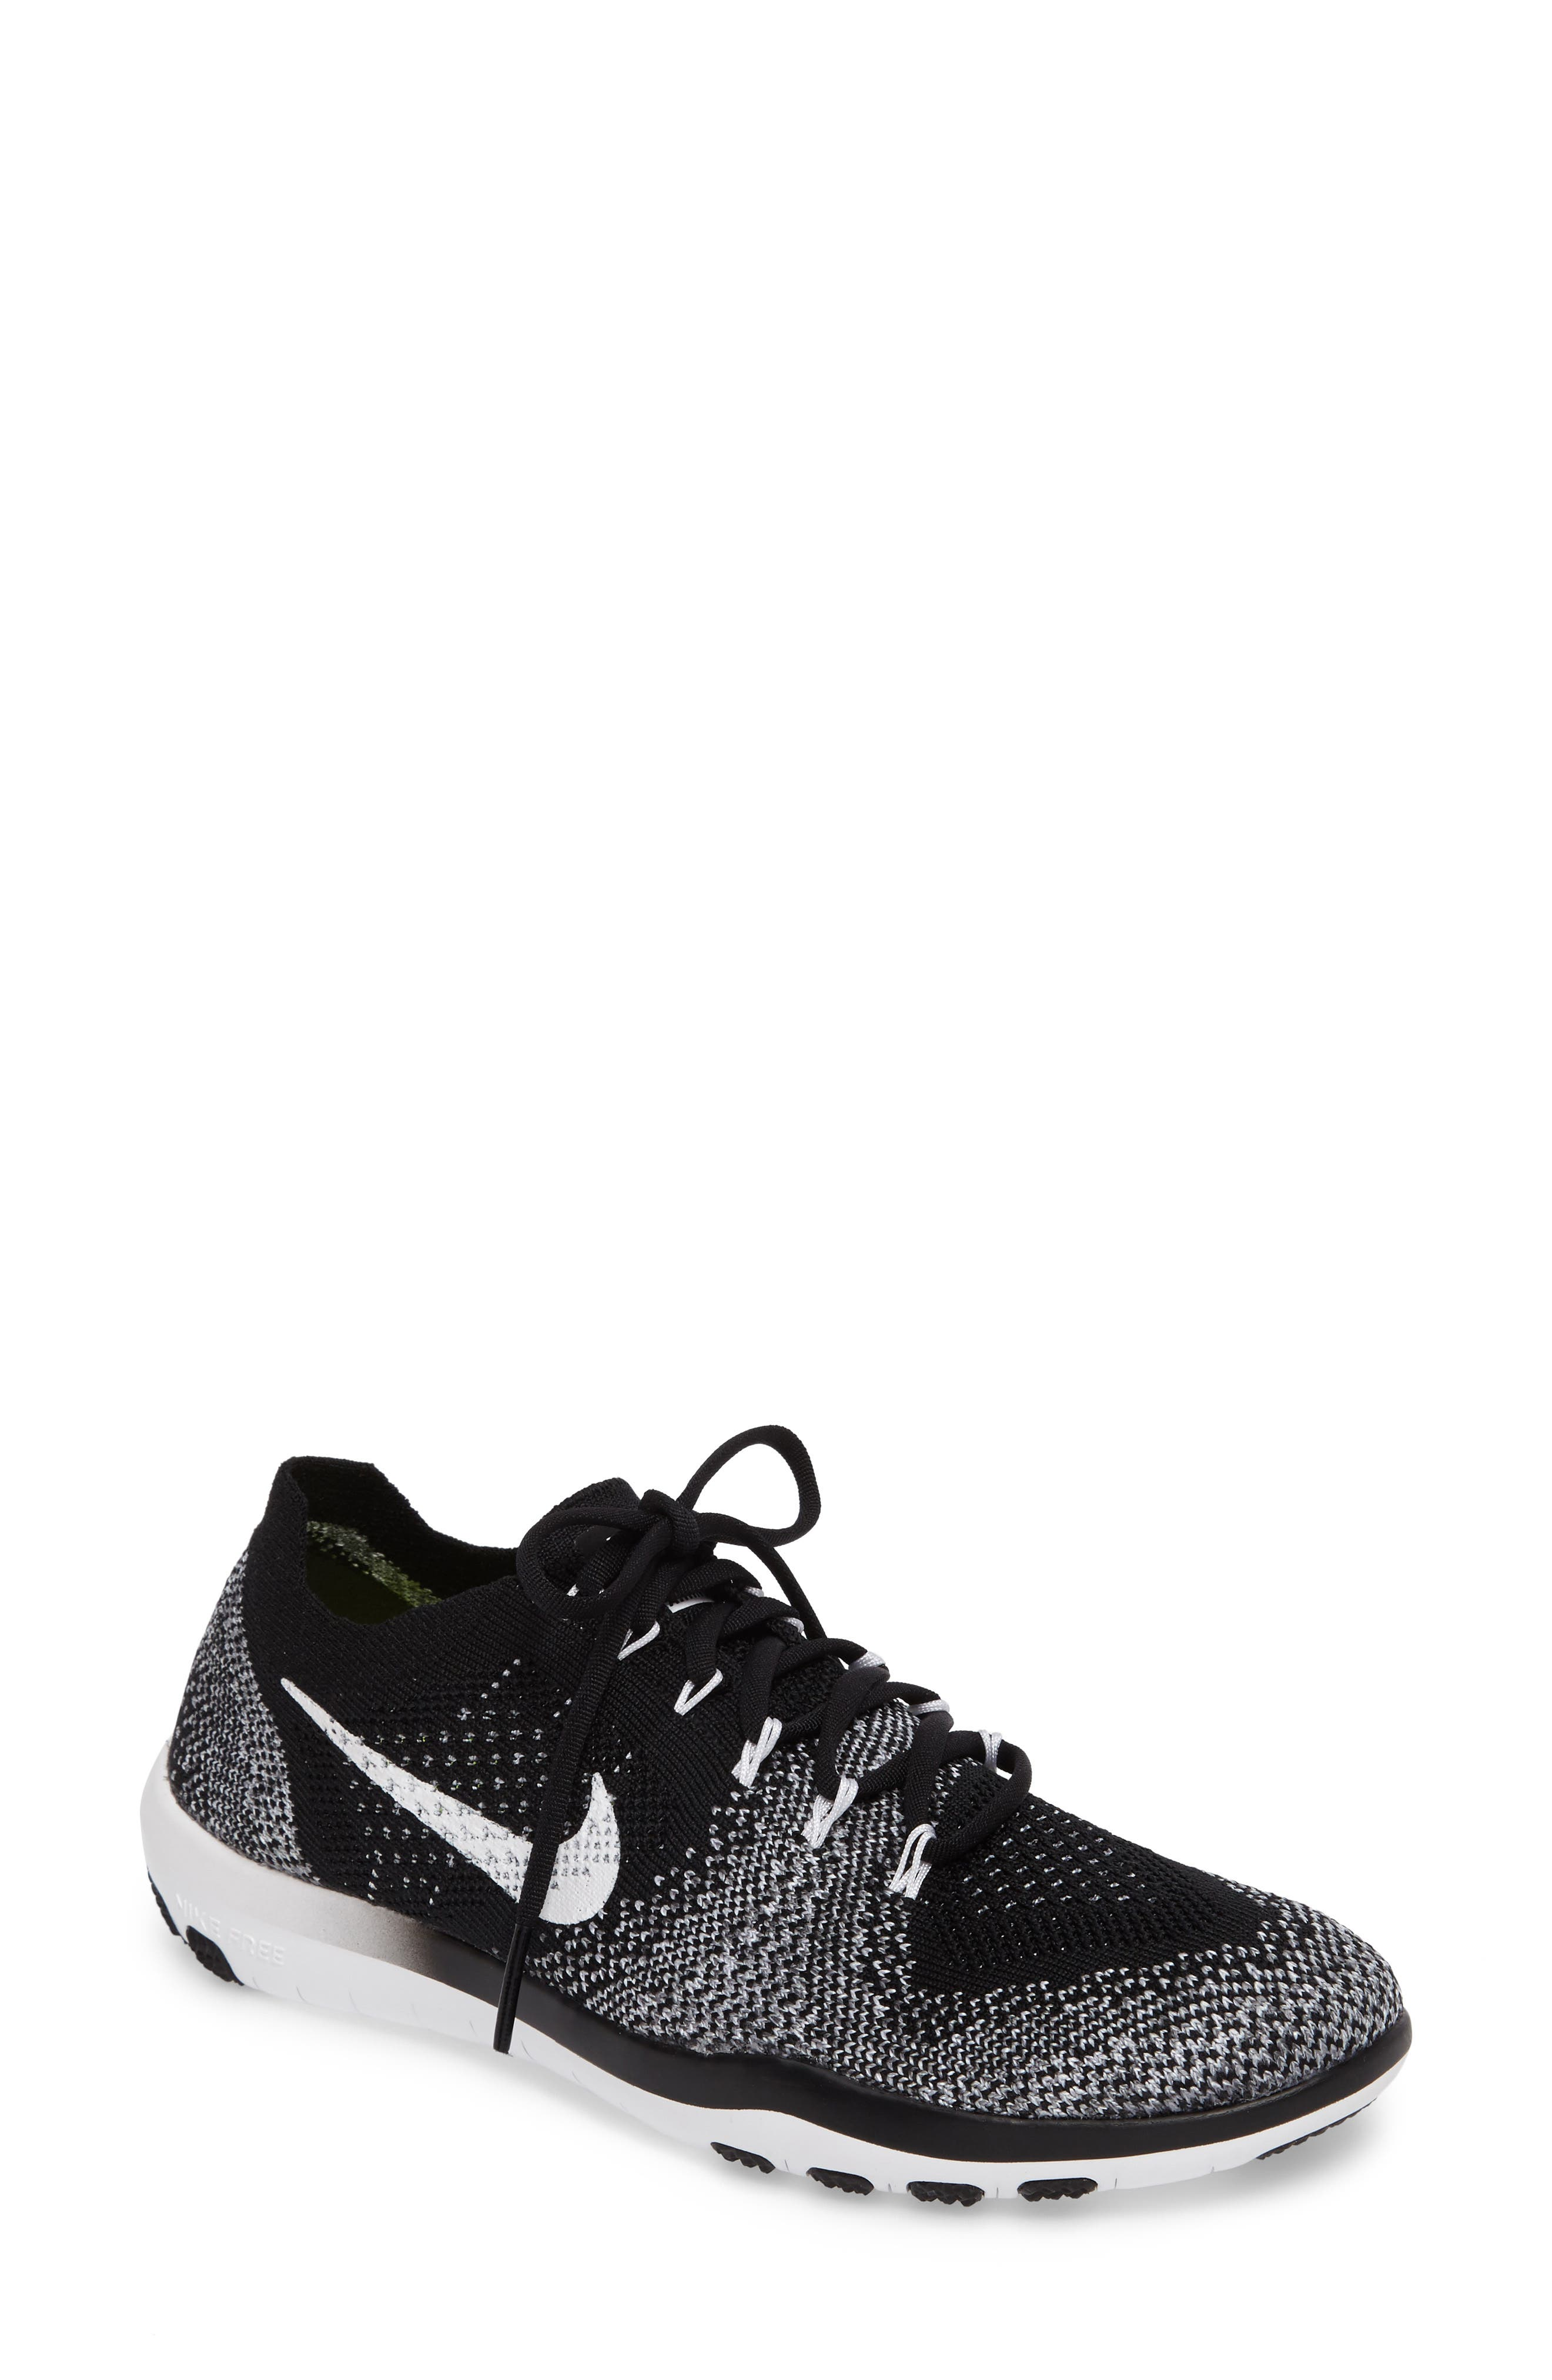 Free Focus Flyknit 2 Training Shoe,                         Main,                         color, 001